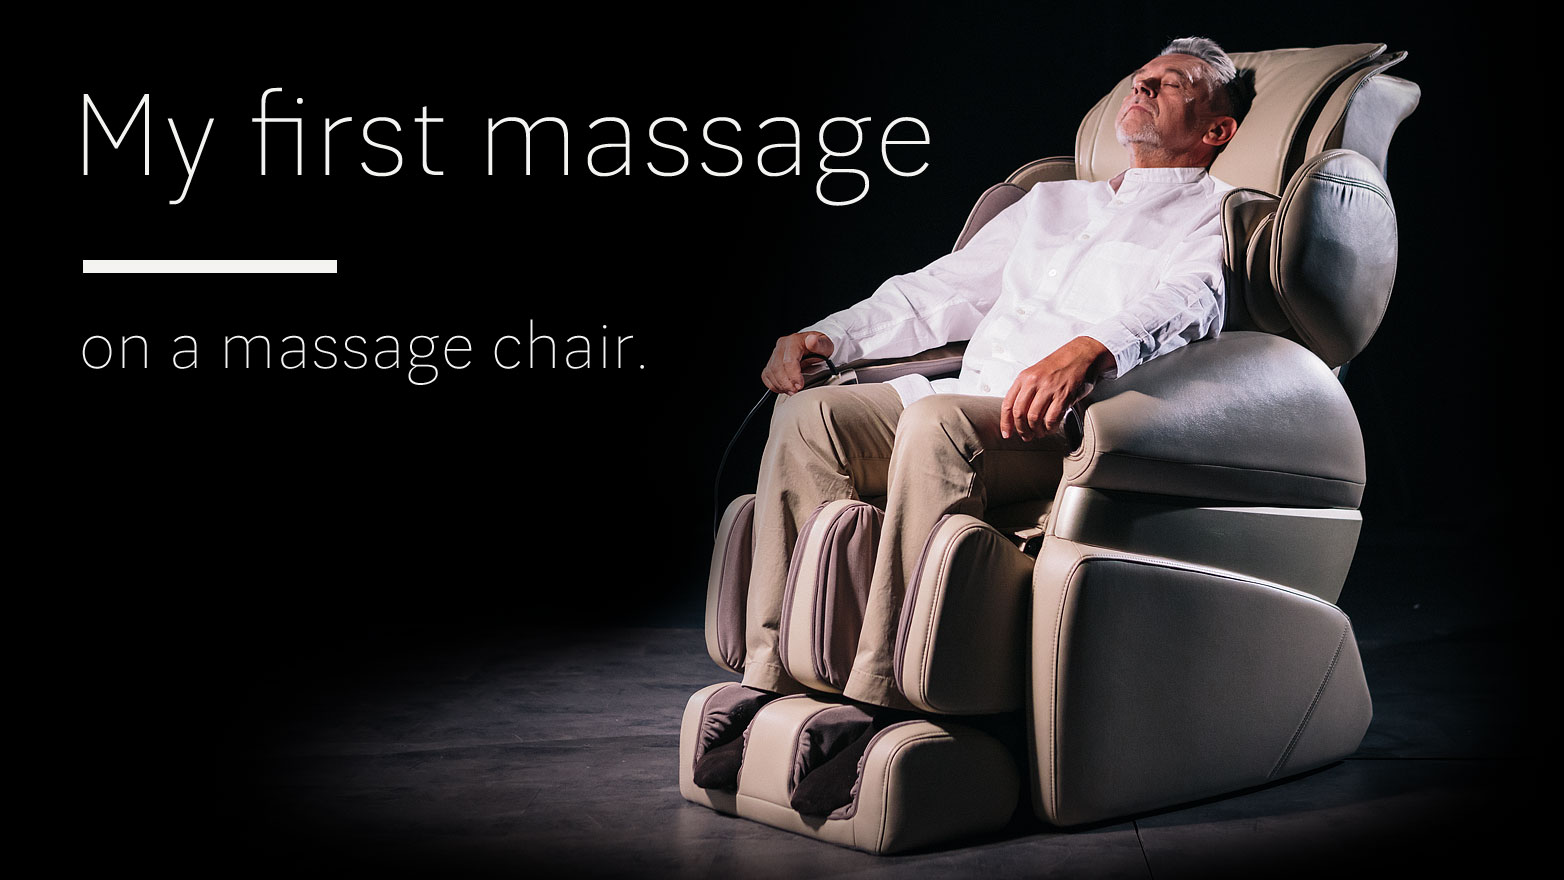 First massage on massage chair